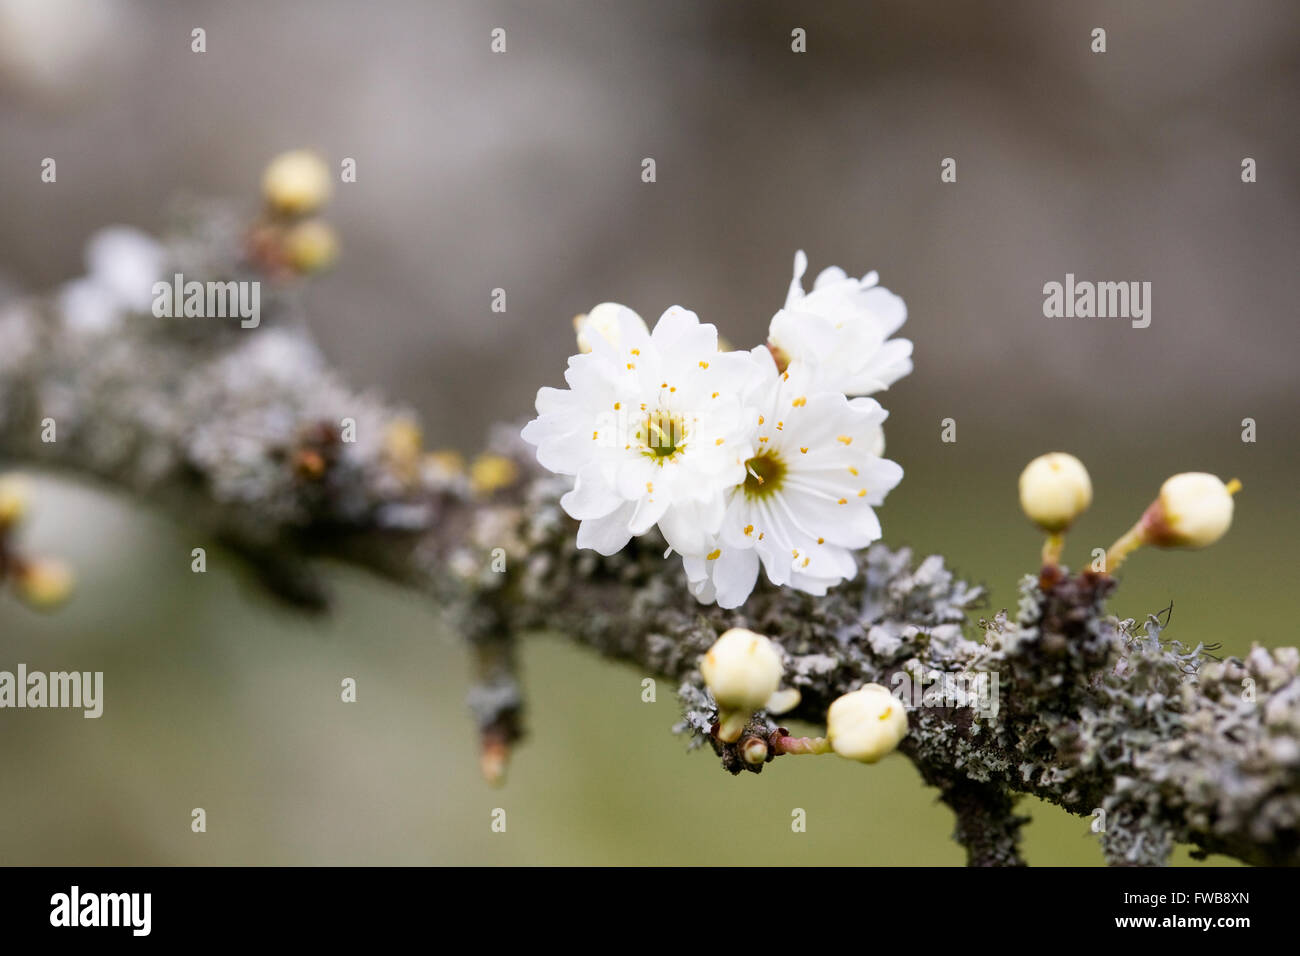 Prunus spinosa 'Plena'. Blackthorn flowers in Spring.blossoms - Stock Image